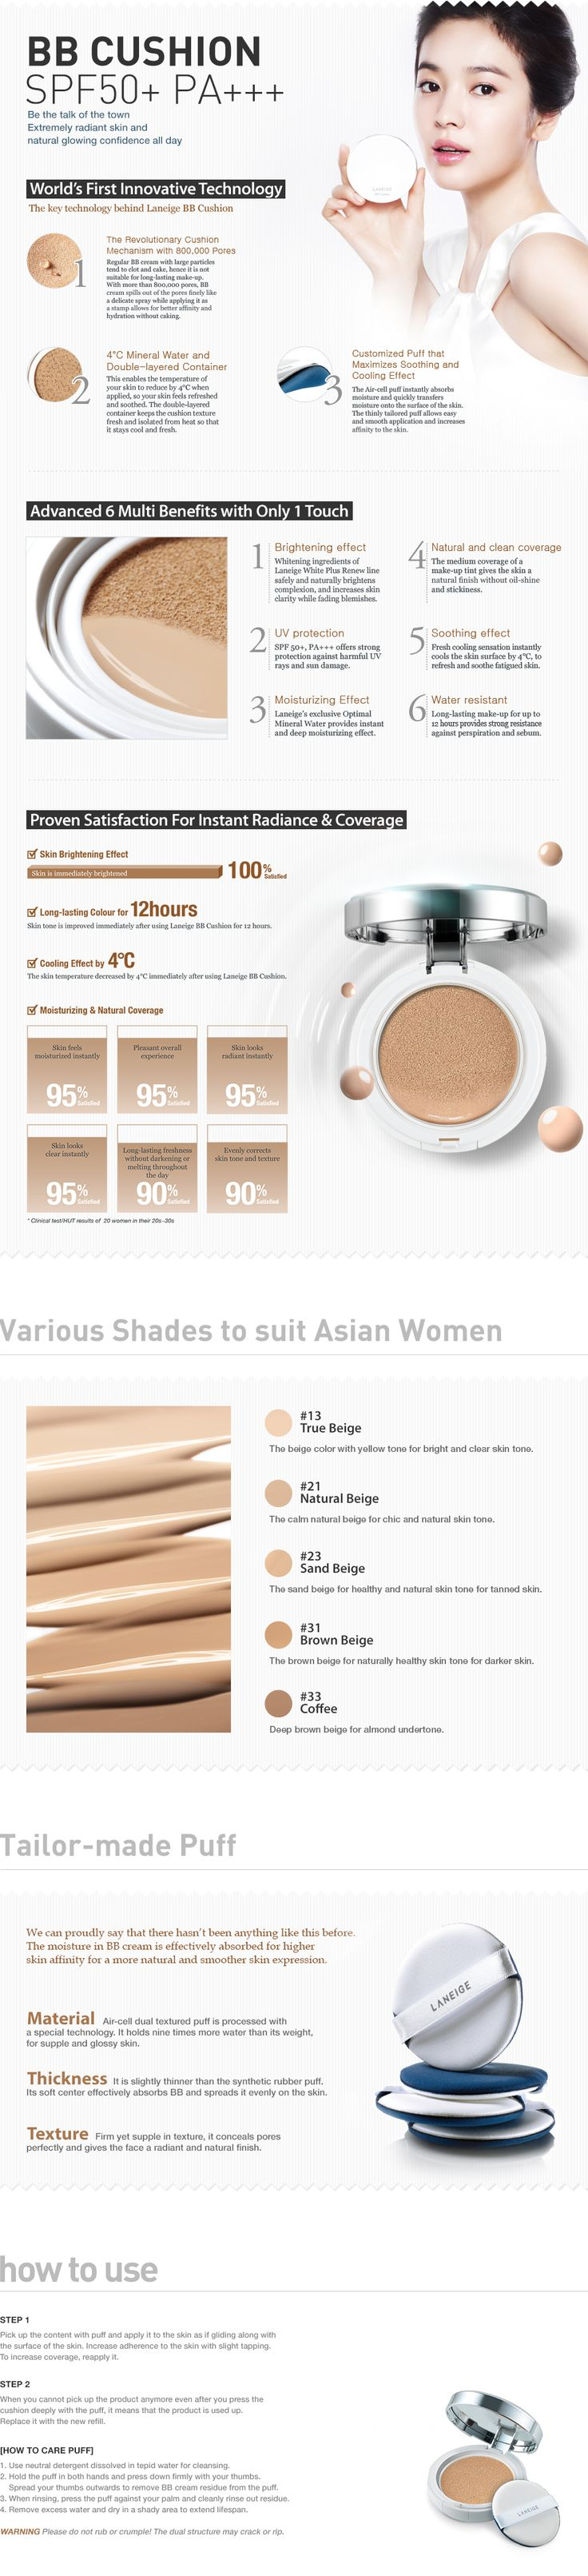 BB CUSHION SPF50+ PA+++ - LANEIGE